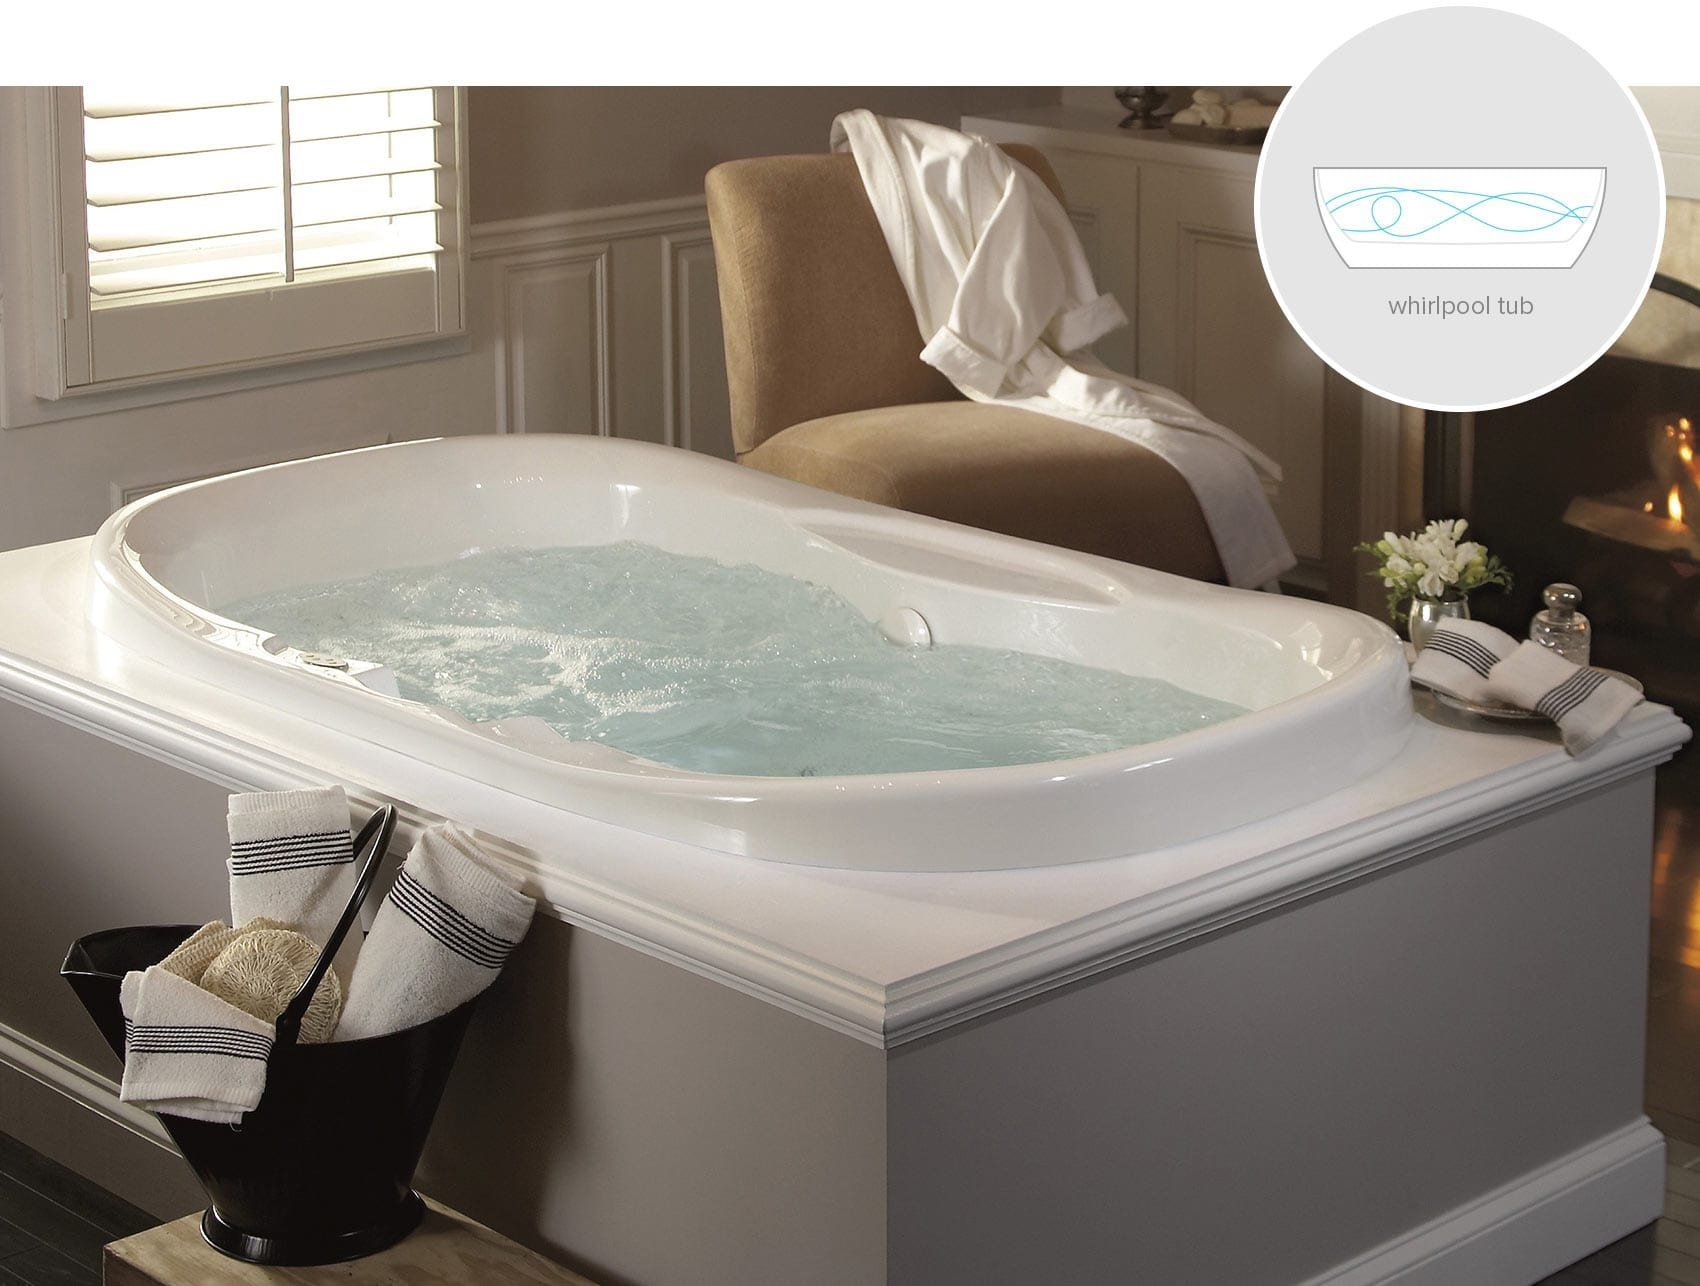 Air bath tubs vs whirlpool | ideas | Pinterest | Bathtub, Bathroom ...